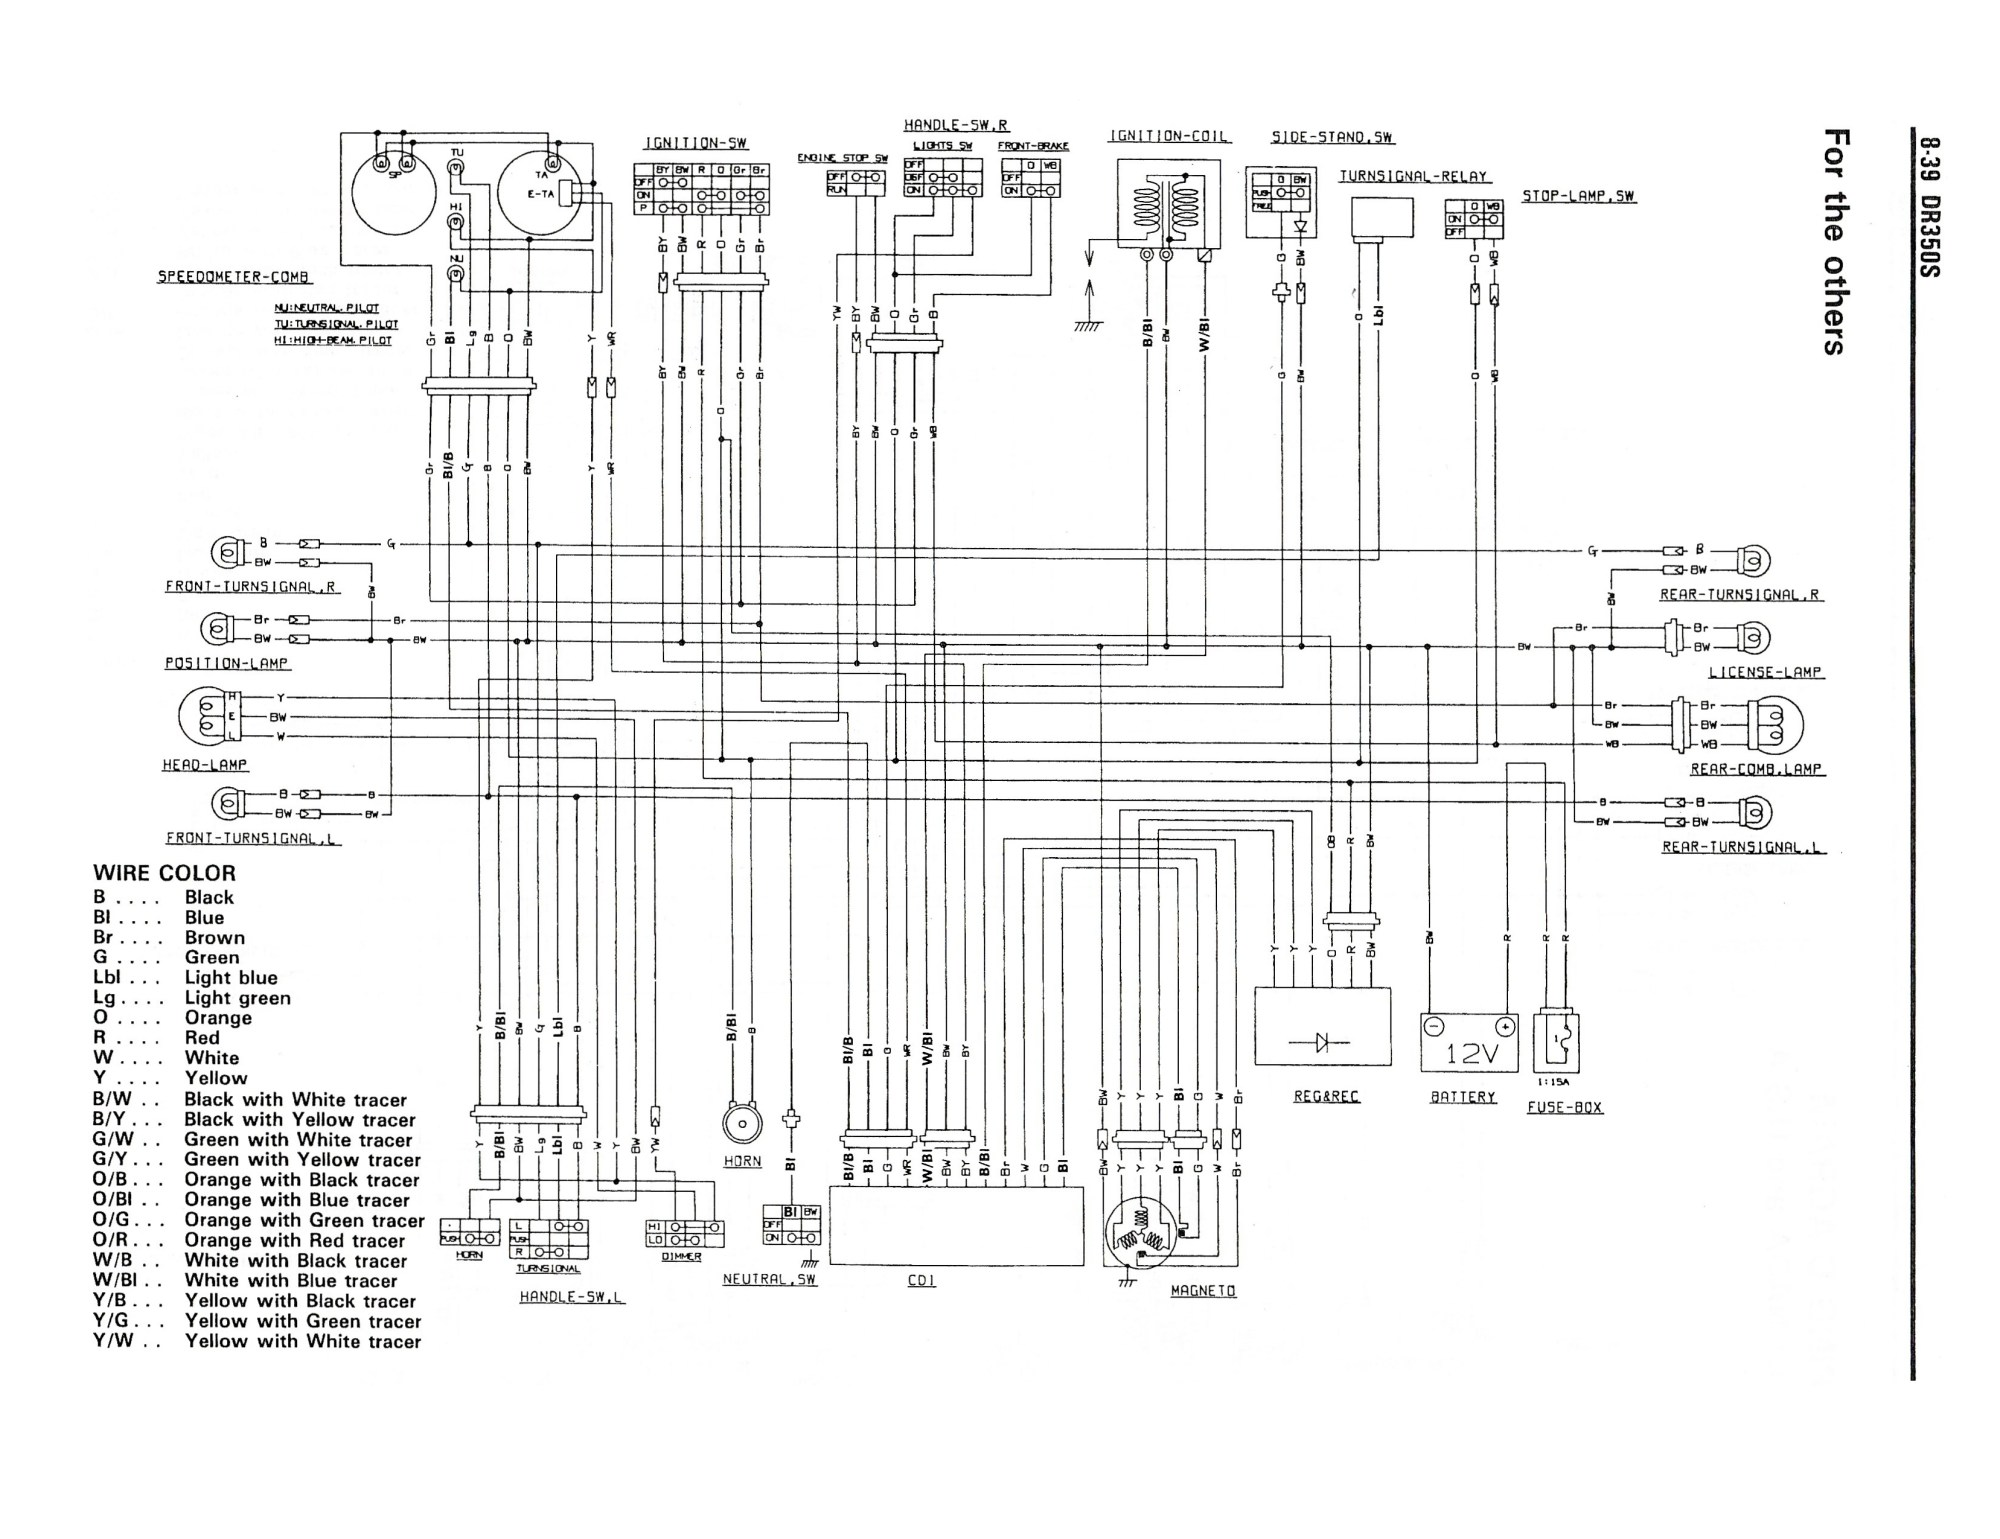 hight resolution of wiring diagram for the dr350 s 1990 and later models other suzuki gt250 wiring diagram